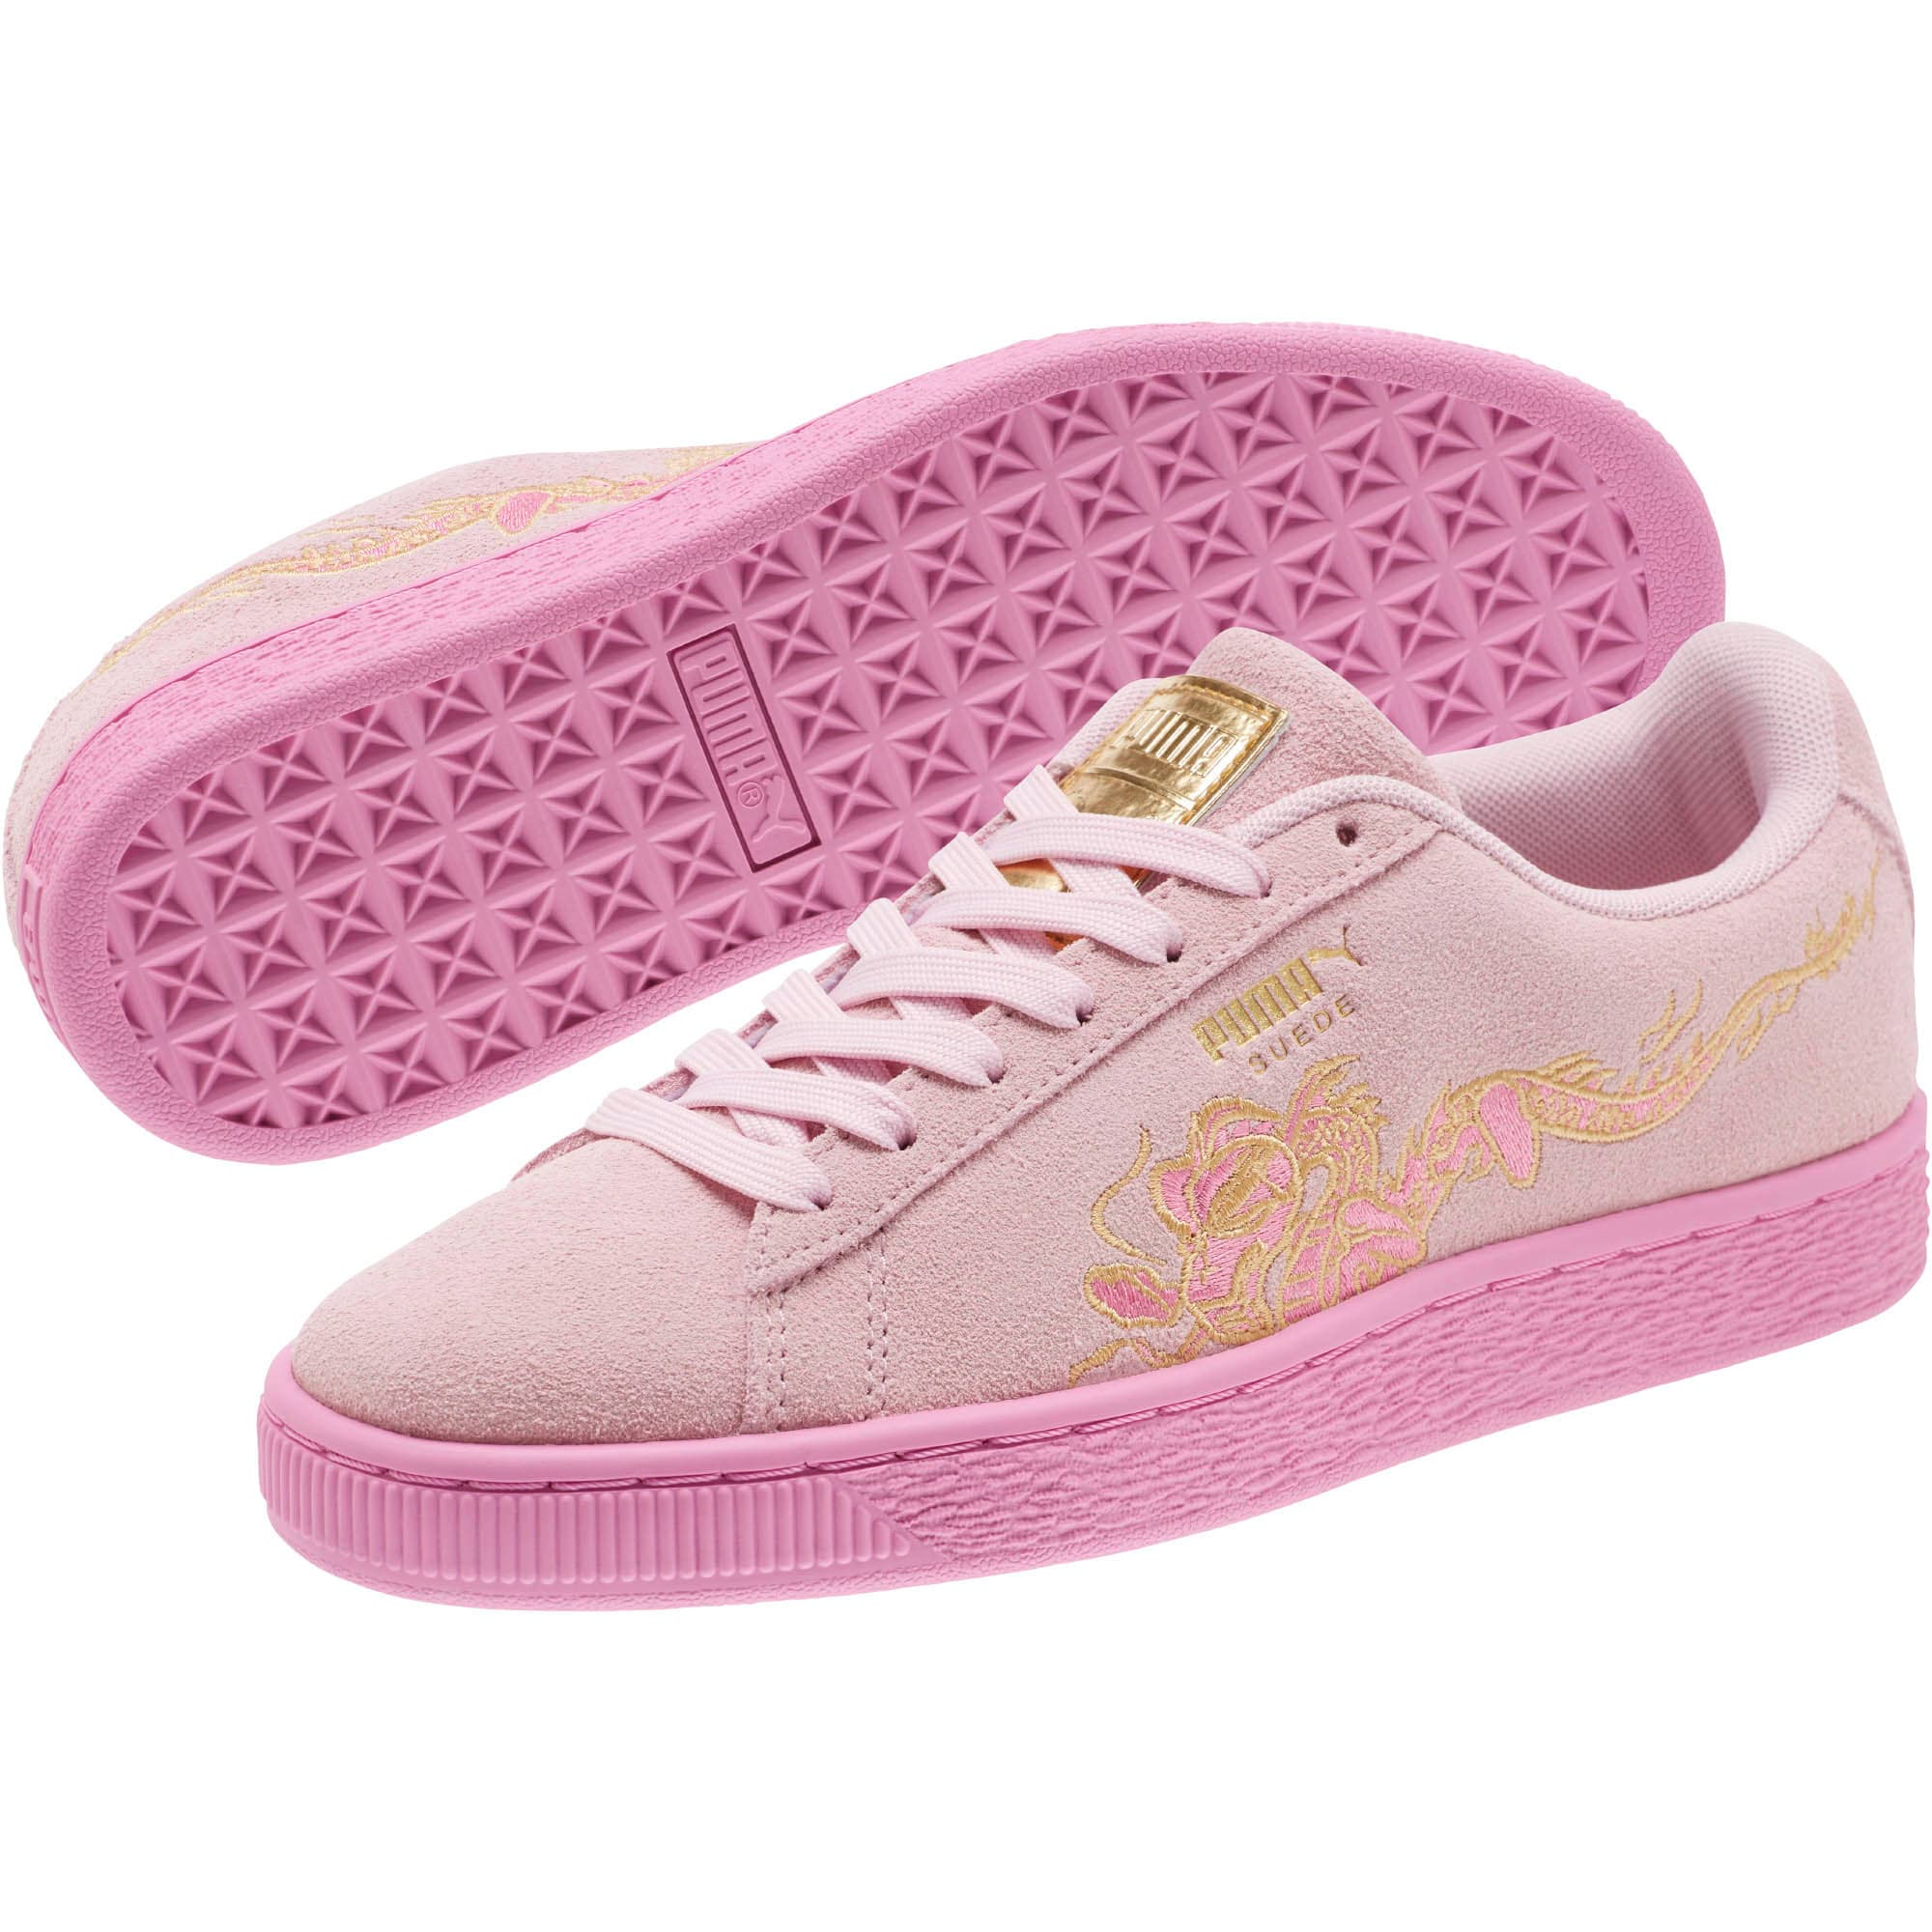 Thumbnail 2 of Suede Dragon Sneakers JR, Winsome Orchid-Orchid, medium